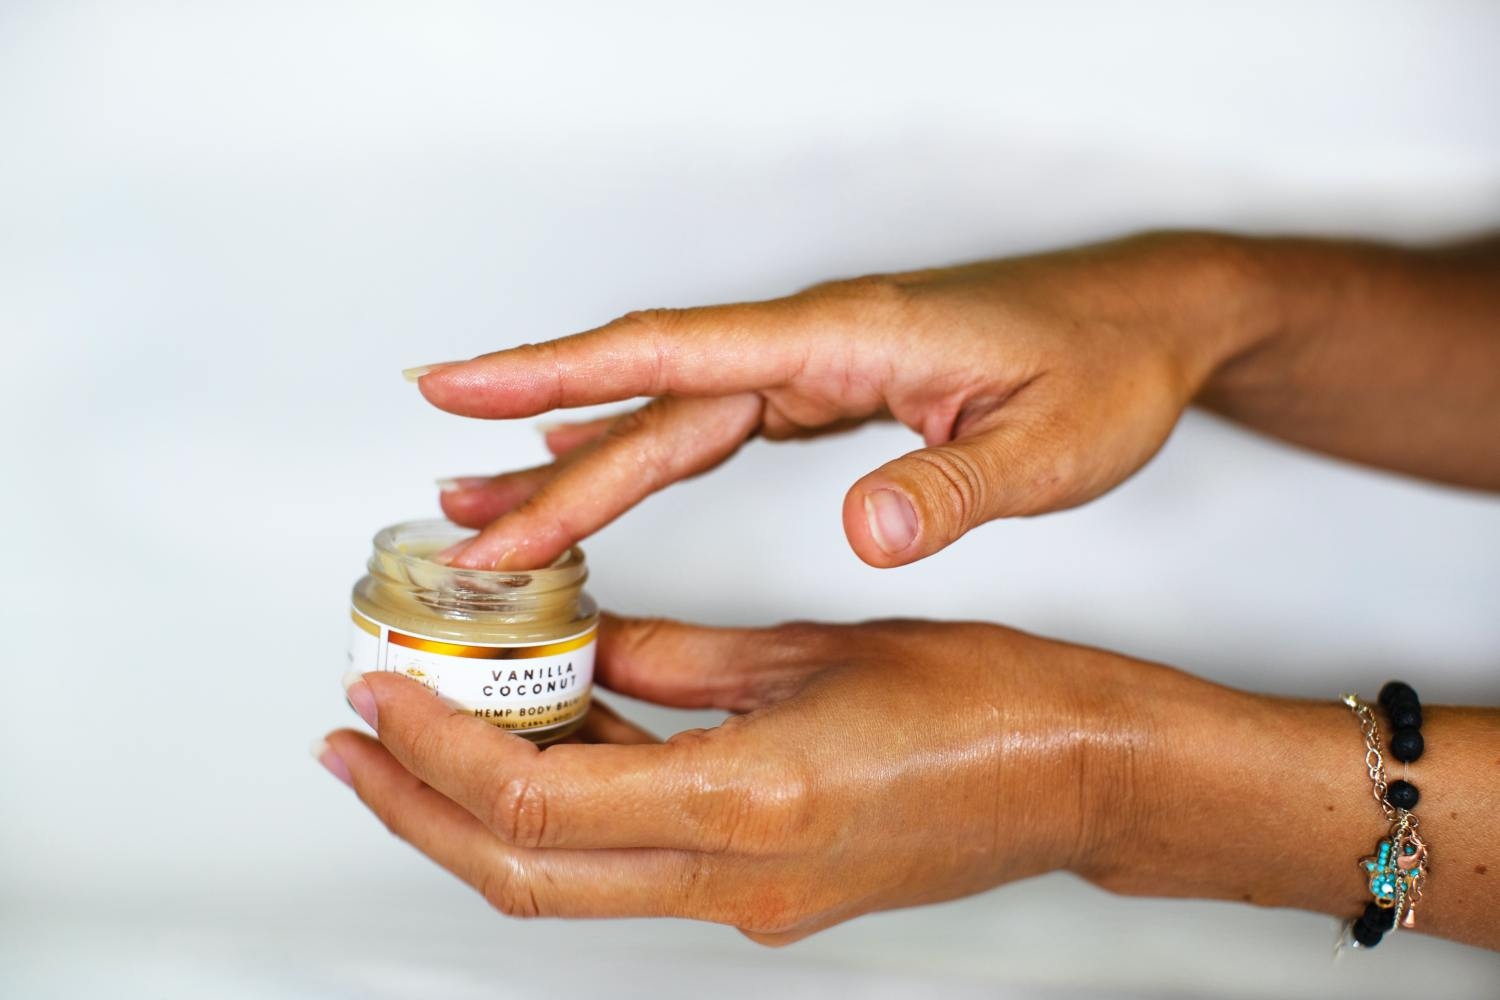 the ultimate guide to coconut oil for skin: benefits and downsides